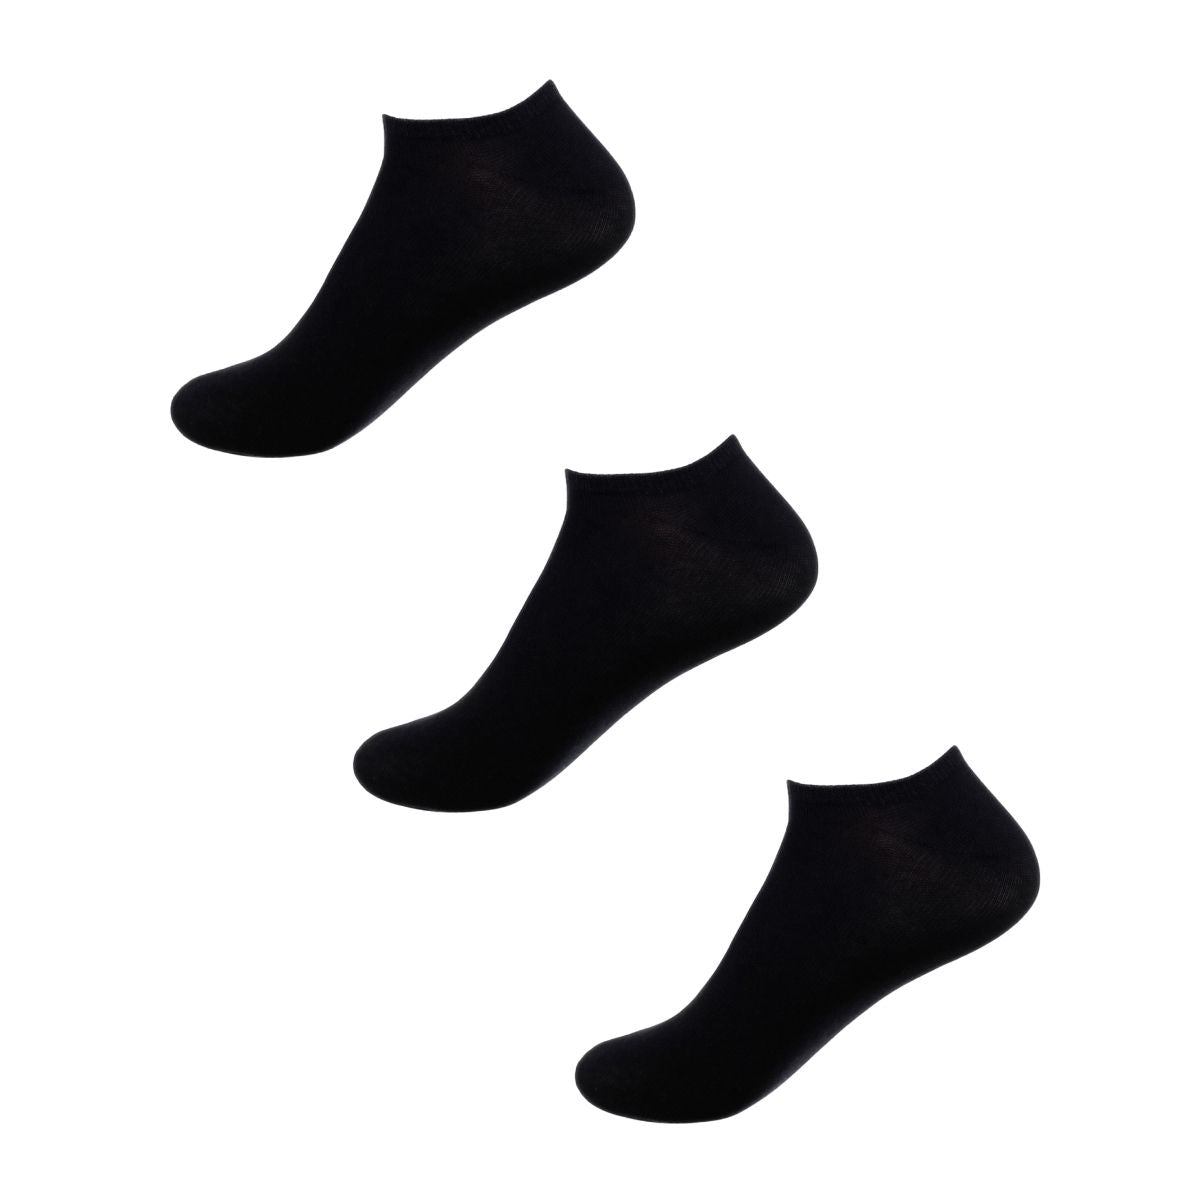 3 PACK of JettProof Seamless Feel Sensory Ankle Socks | Adult